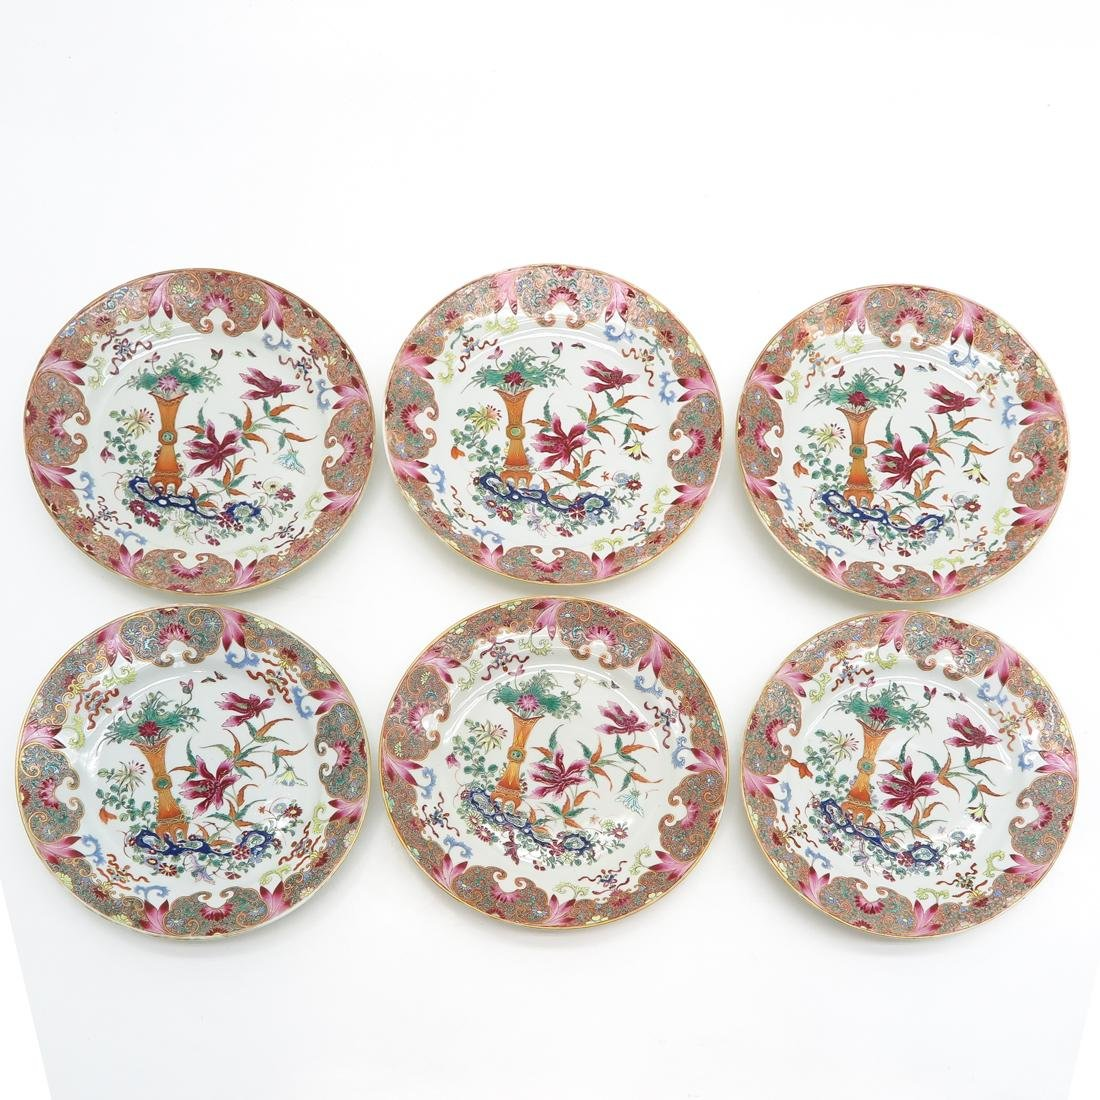 Lot of 6 Plates